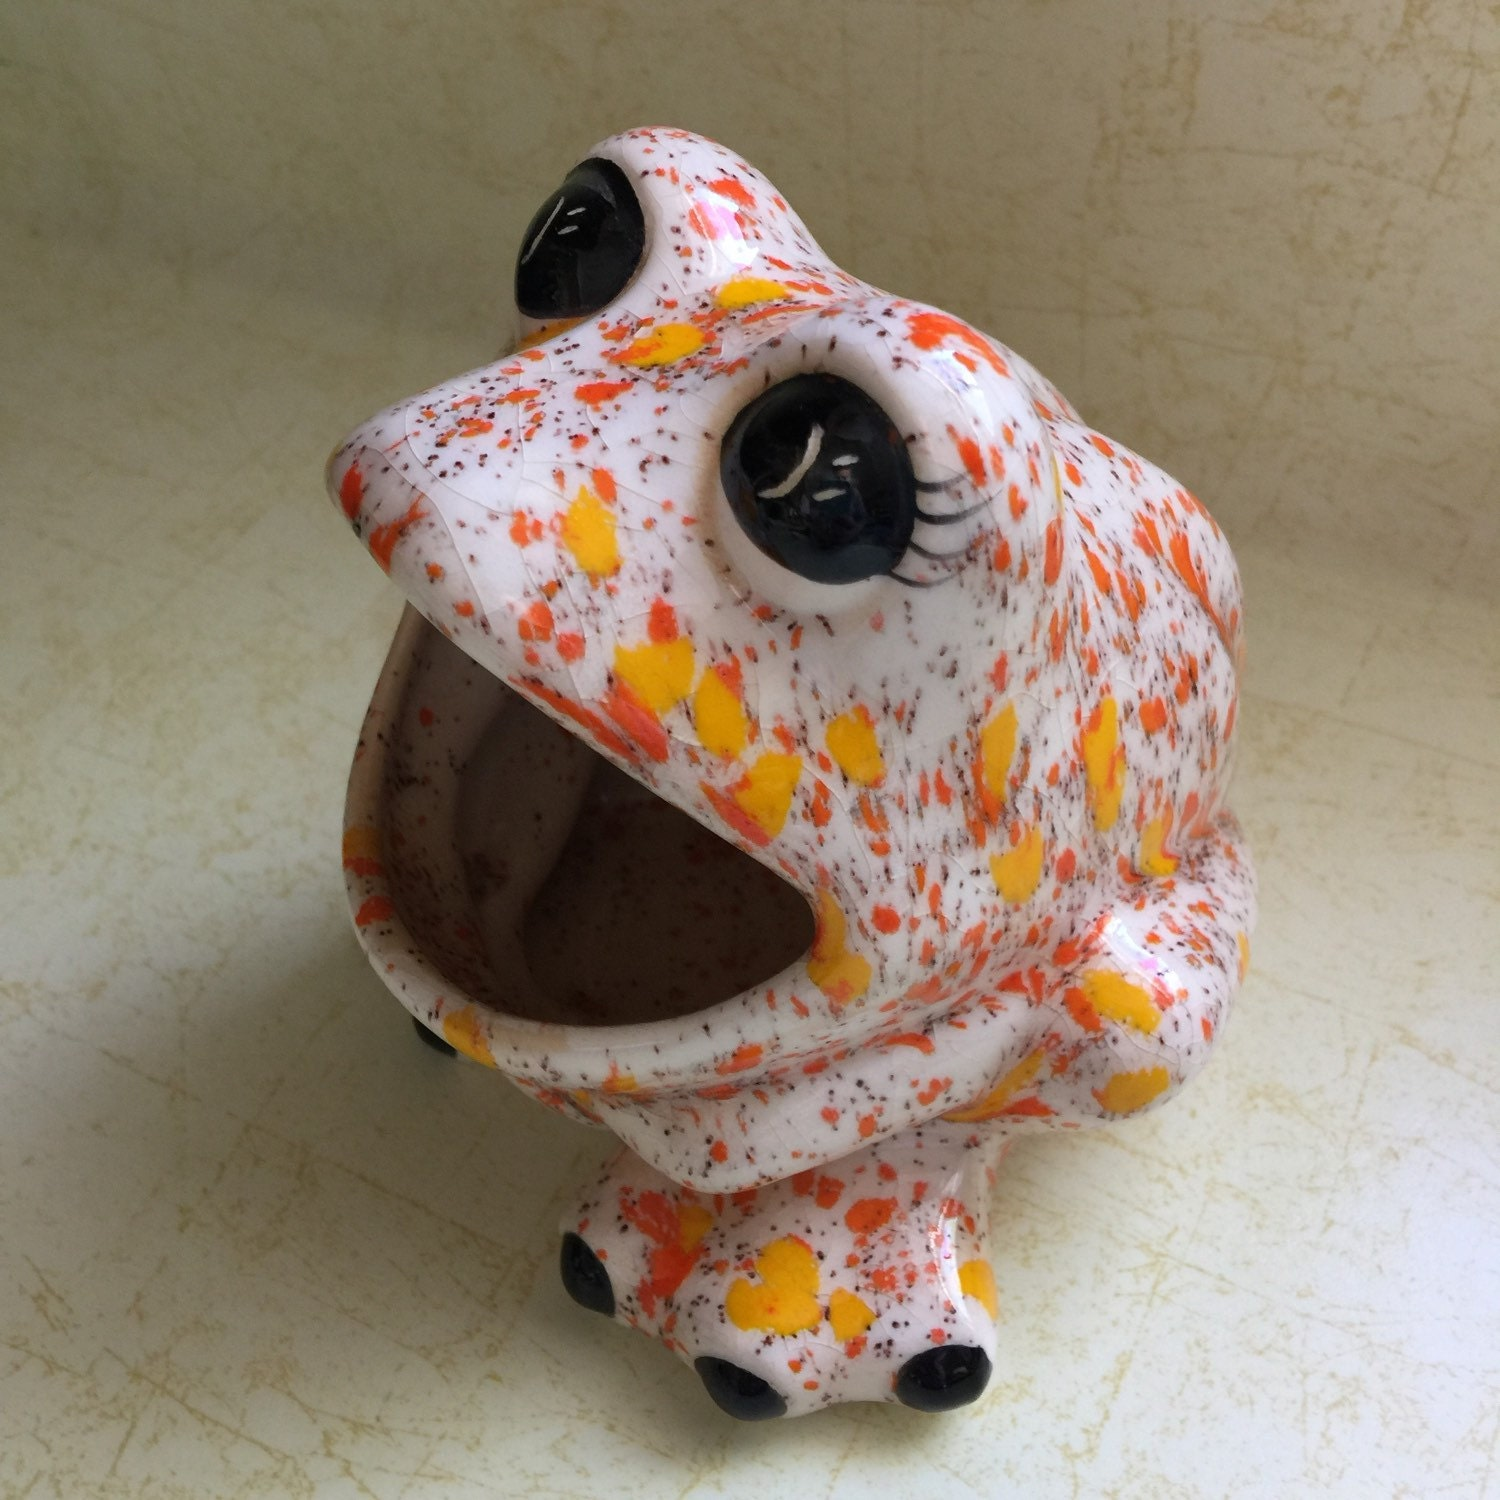 Srubby For Kitchen: Vintage Ceramic Frog Scrubby Holder Kitchen By